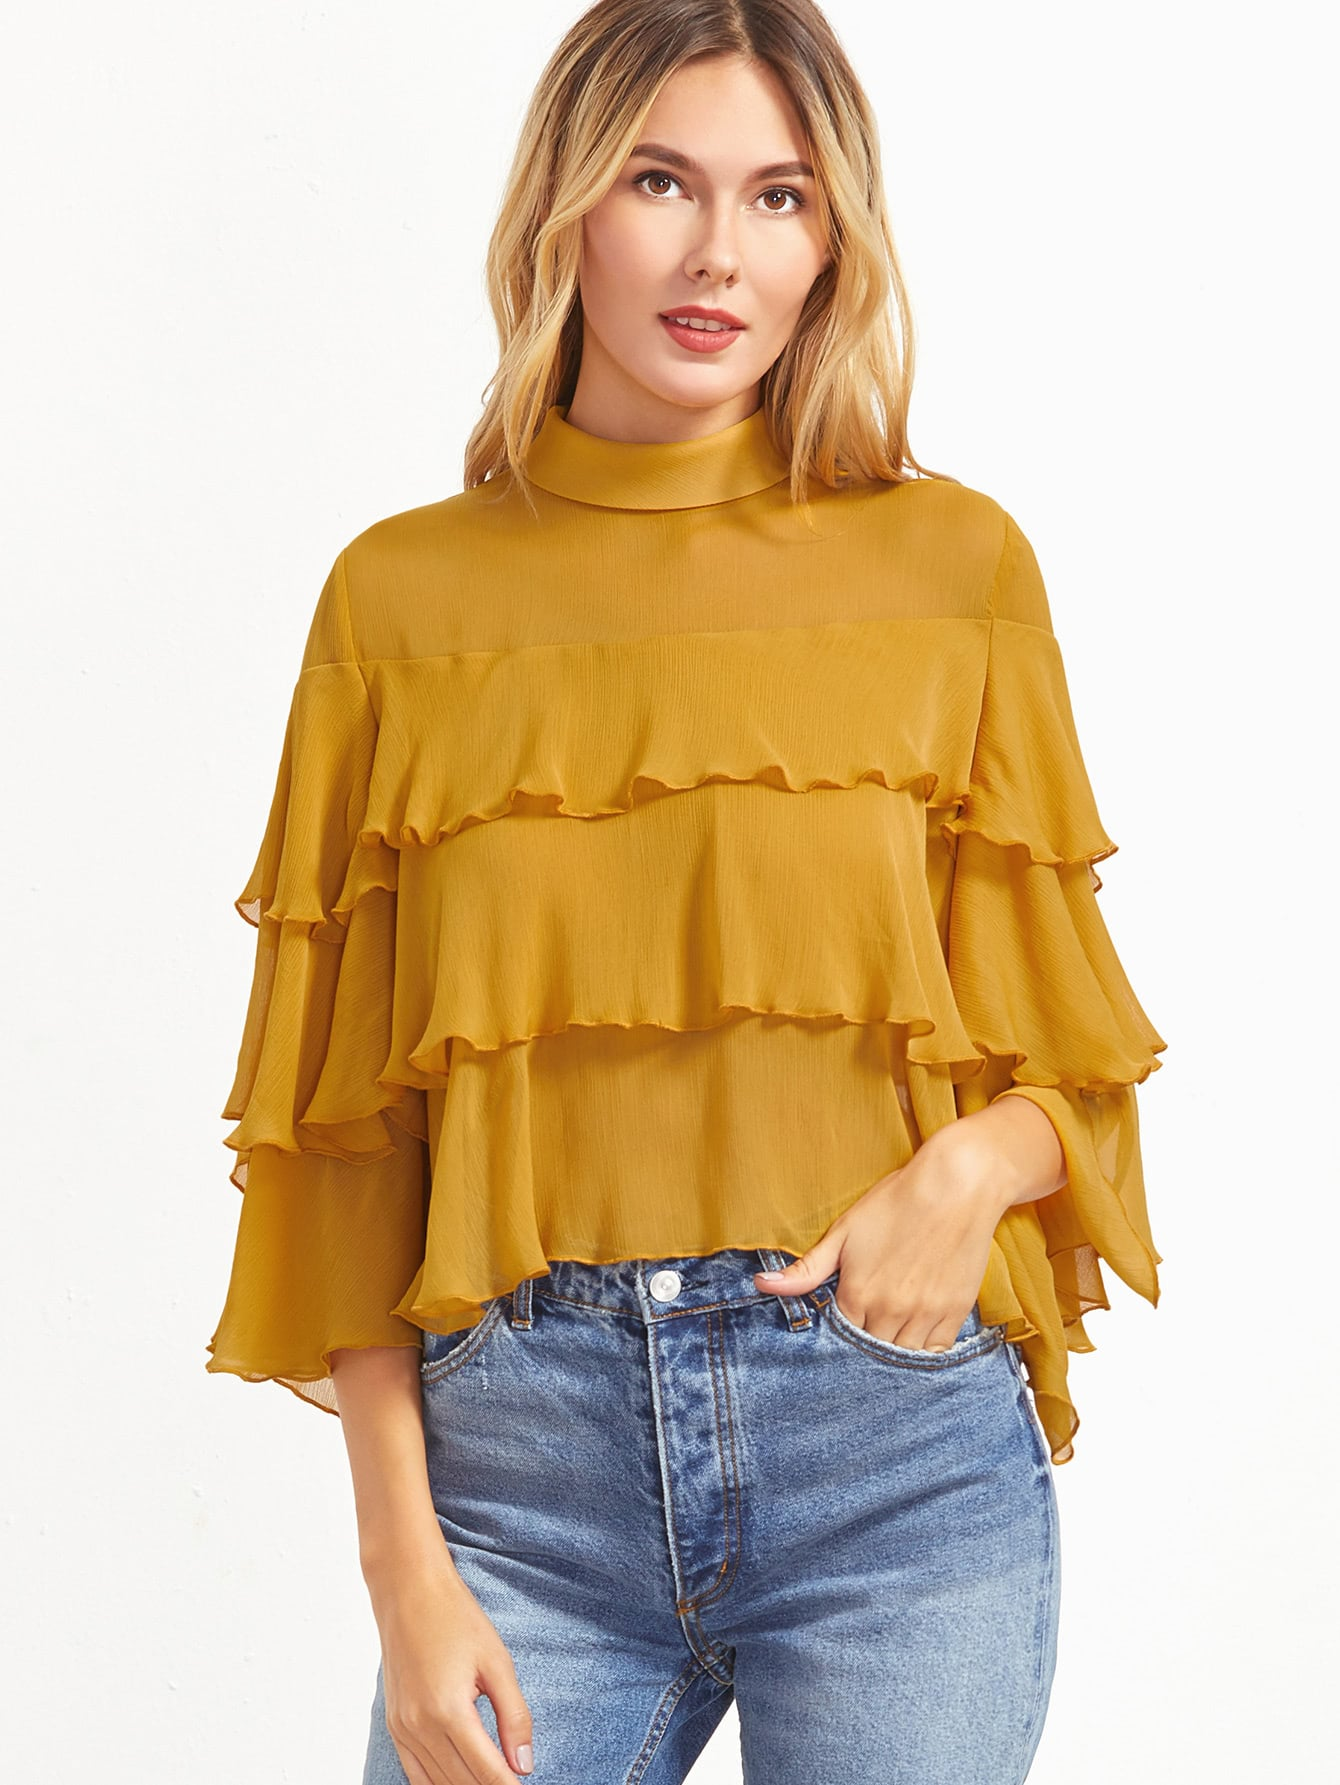 Ruffled Collar Blouses